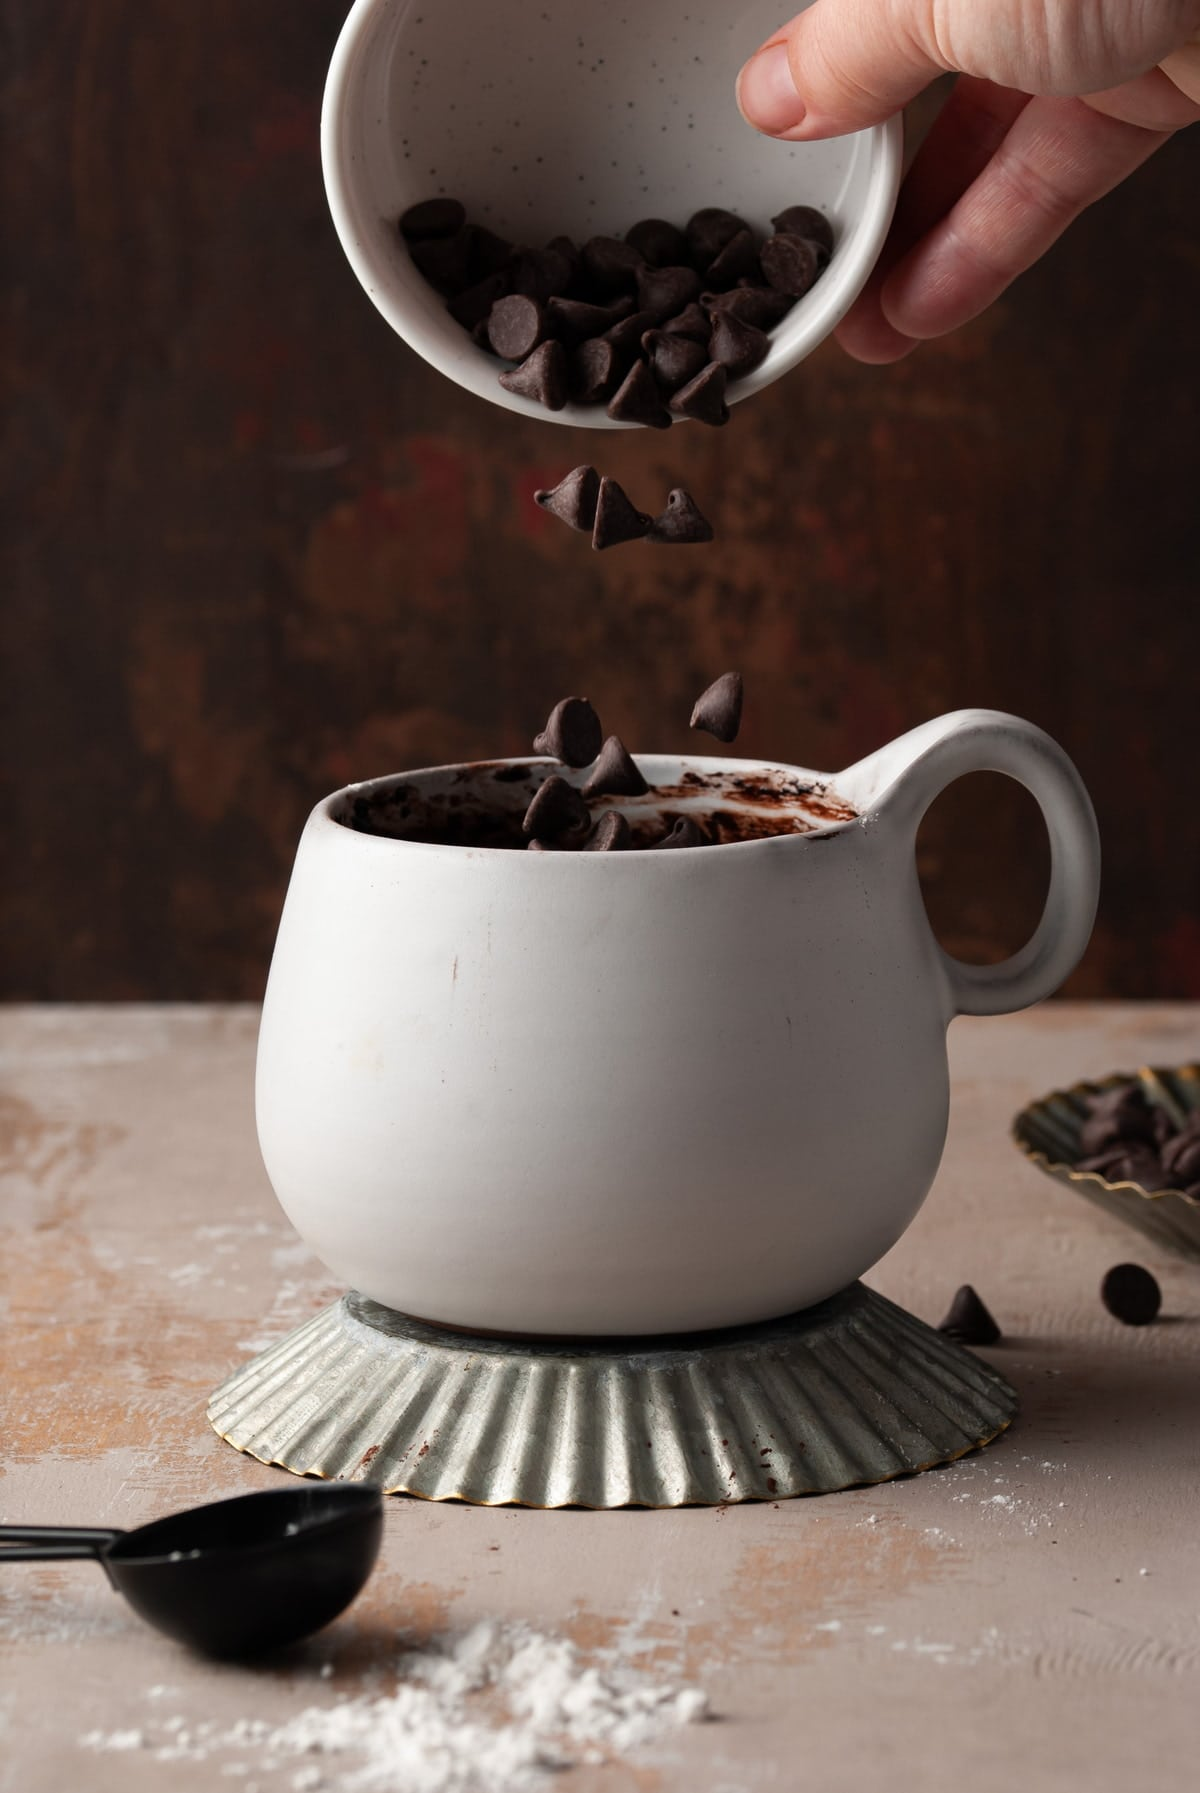 pouring chocolate chips into white mug